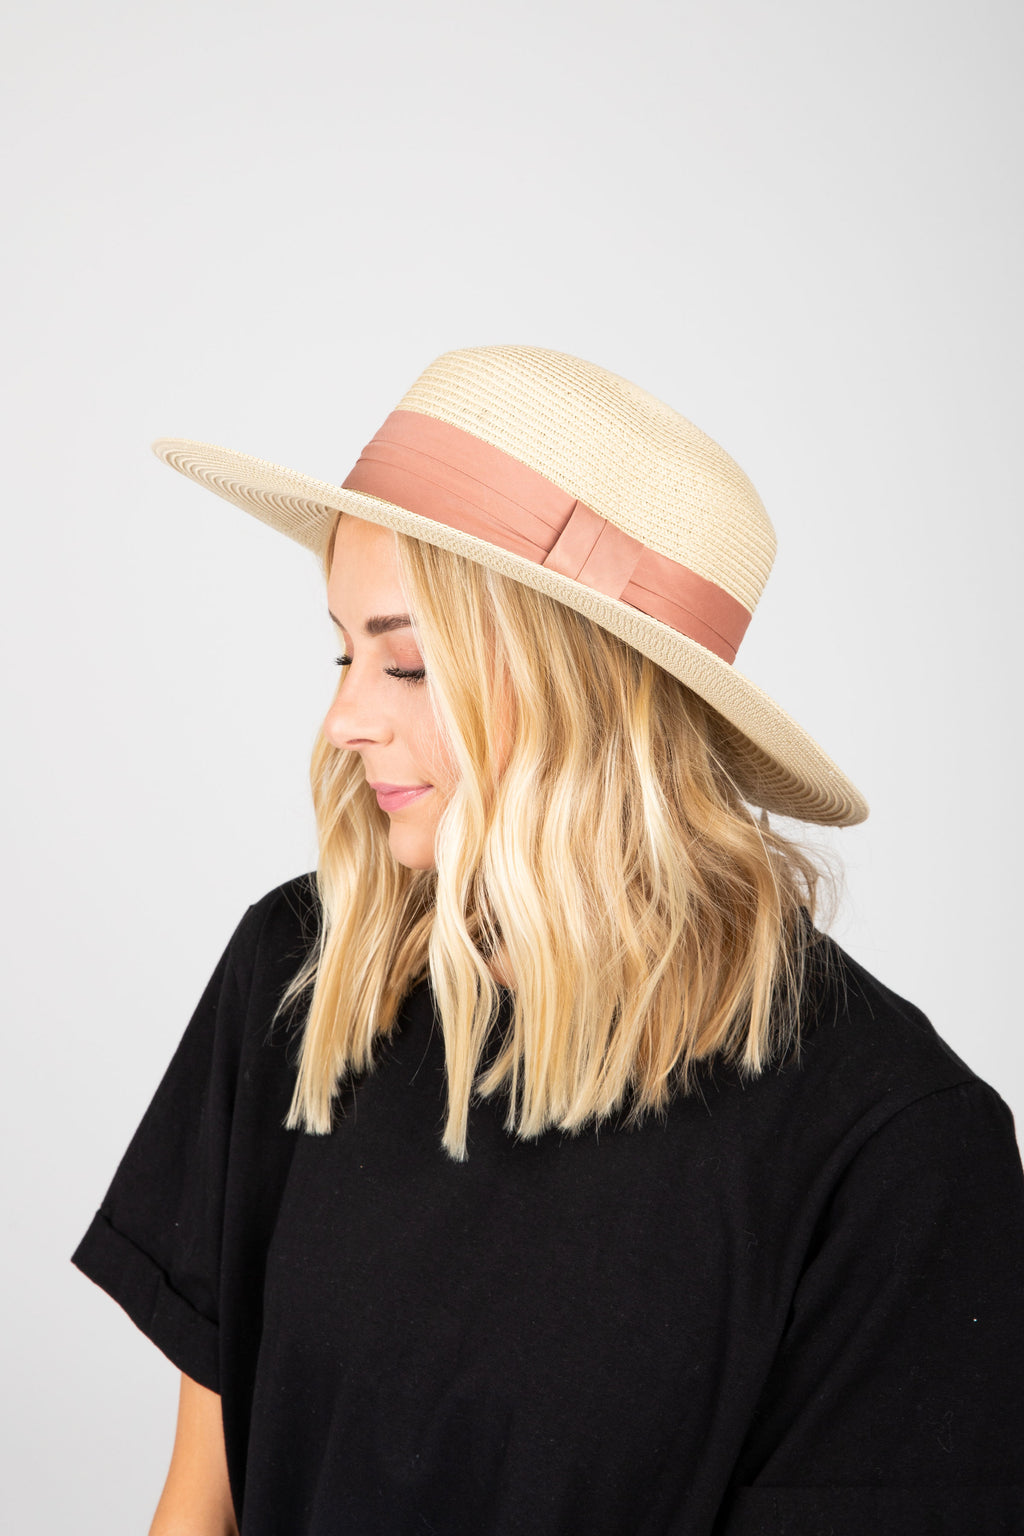 Hat No. 34: Boater Hat in Blush